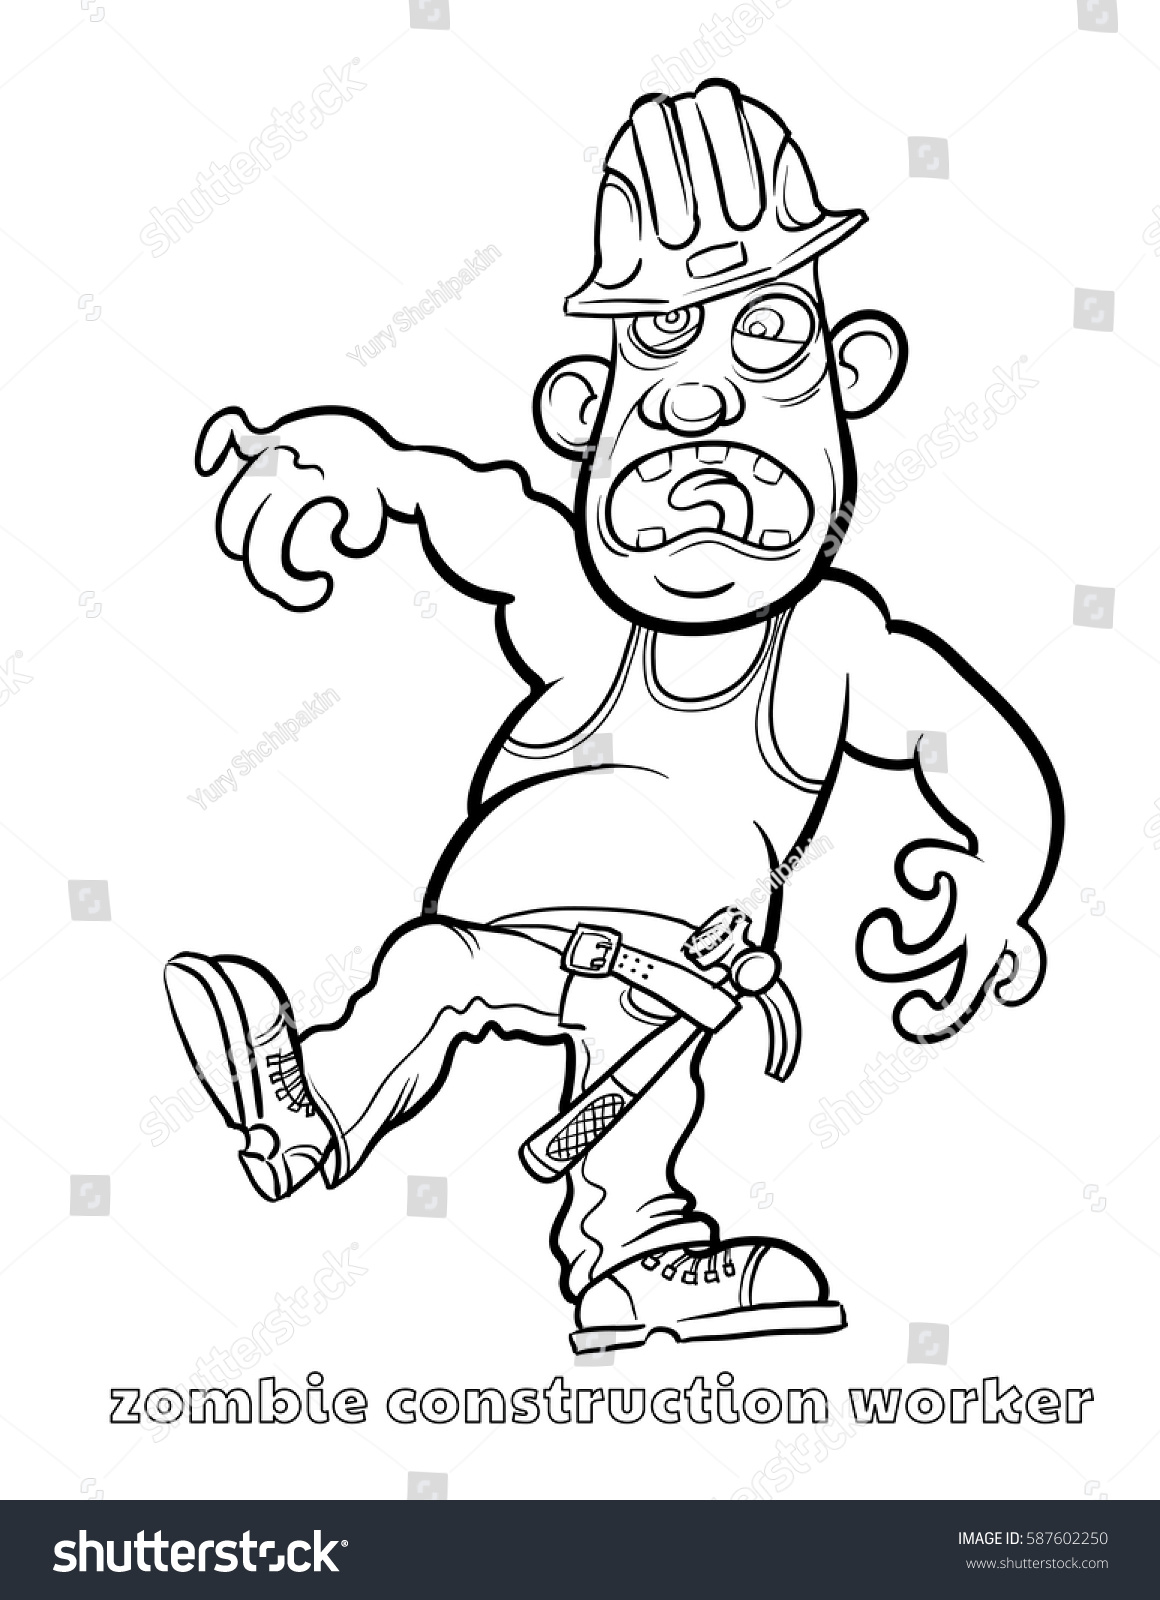 Zombie Santa Coloring Page With Funny Construction Worker Vector Illustration